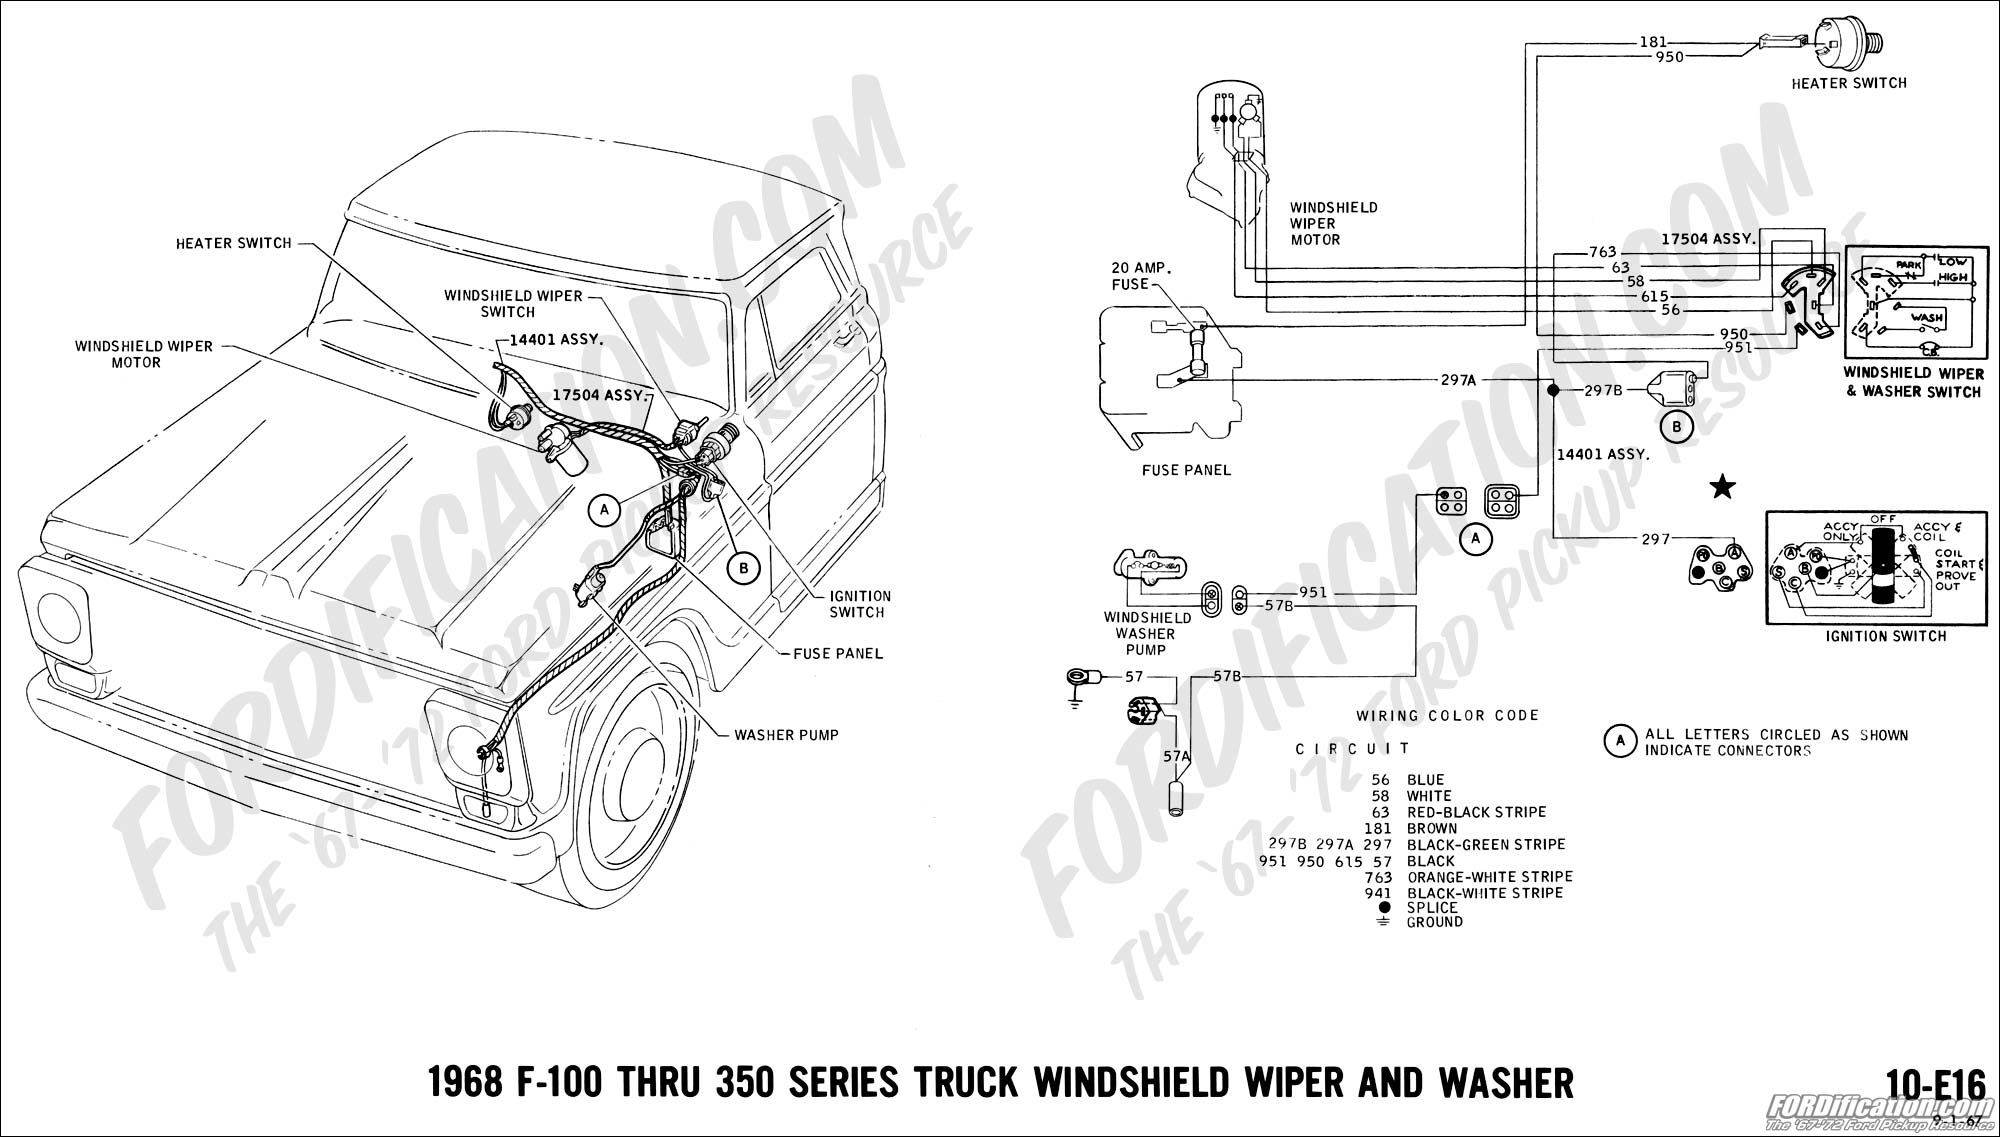 1968 F100 Fuse Box Easy To Read Wiring Diagrams \u2022 2010 Ford Mustang  Fuse Box Diagram 1987 Ford Mustang Fuse Box Location